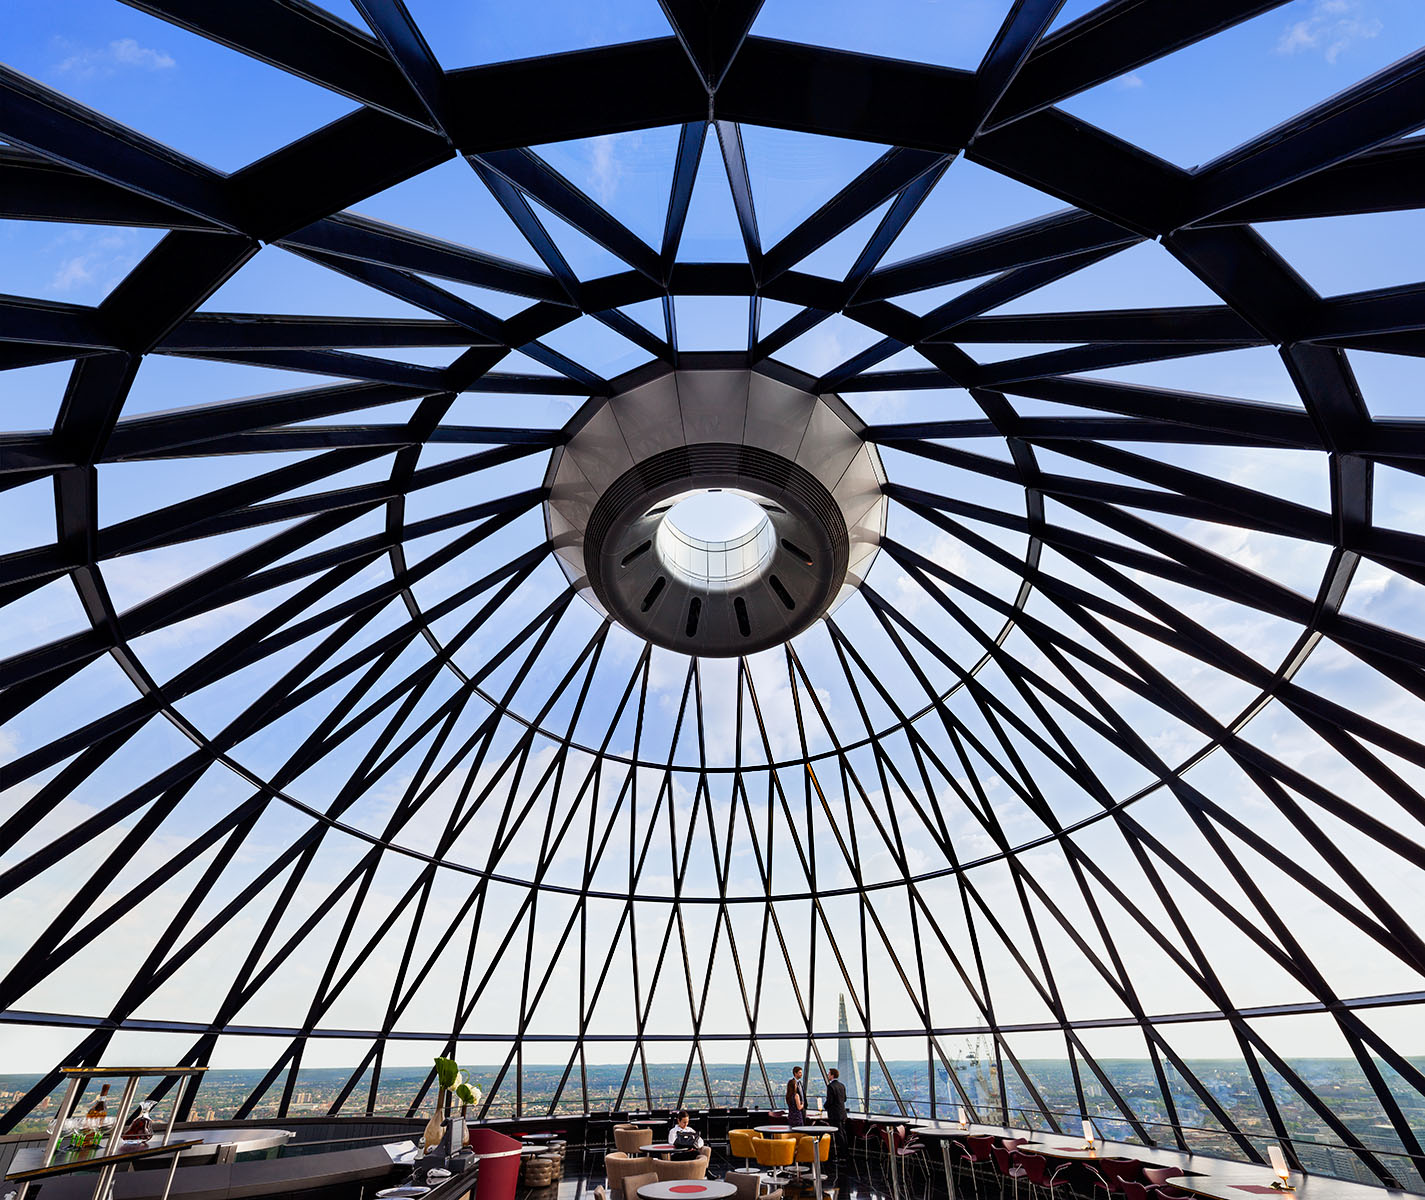 Private members bar / restaurant at top of London's iconic tower.Client: Baizdon / Evans Randall